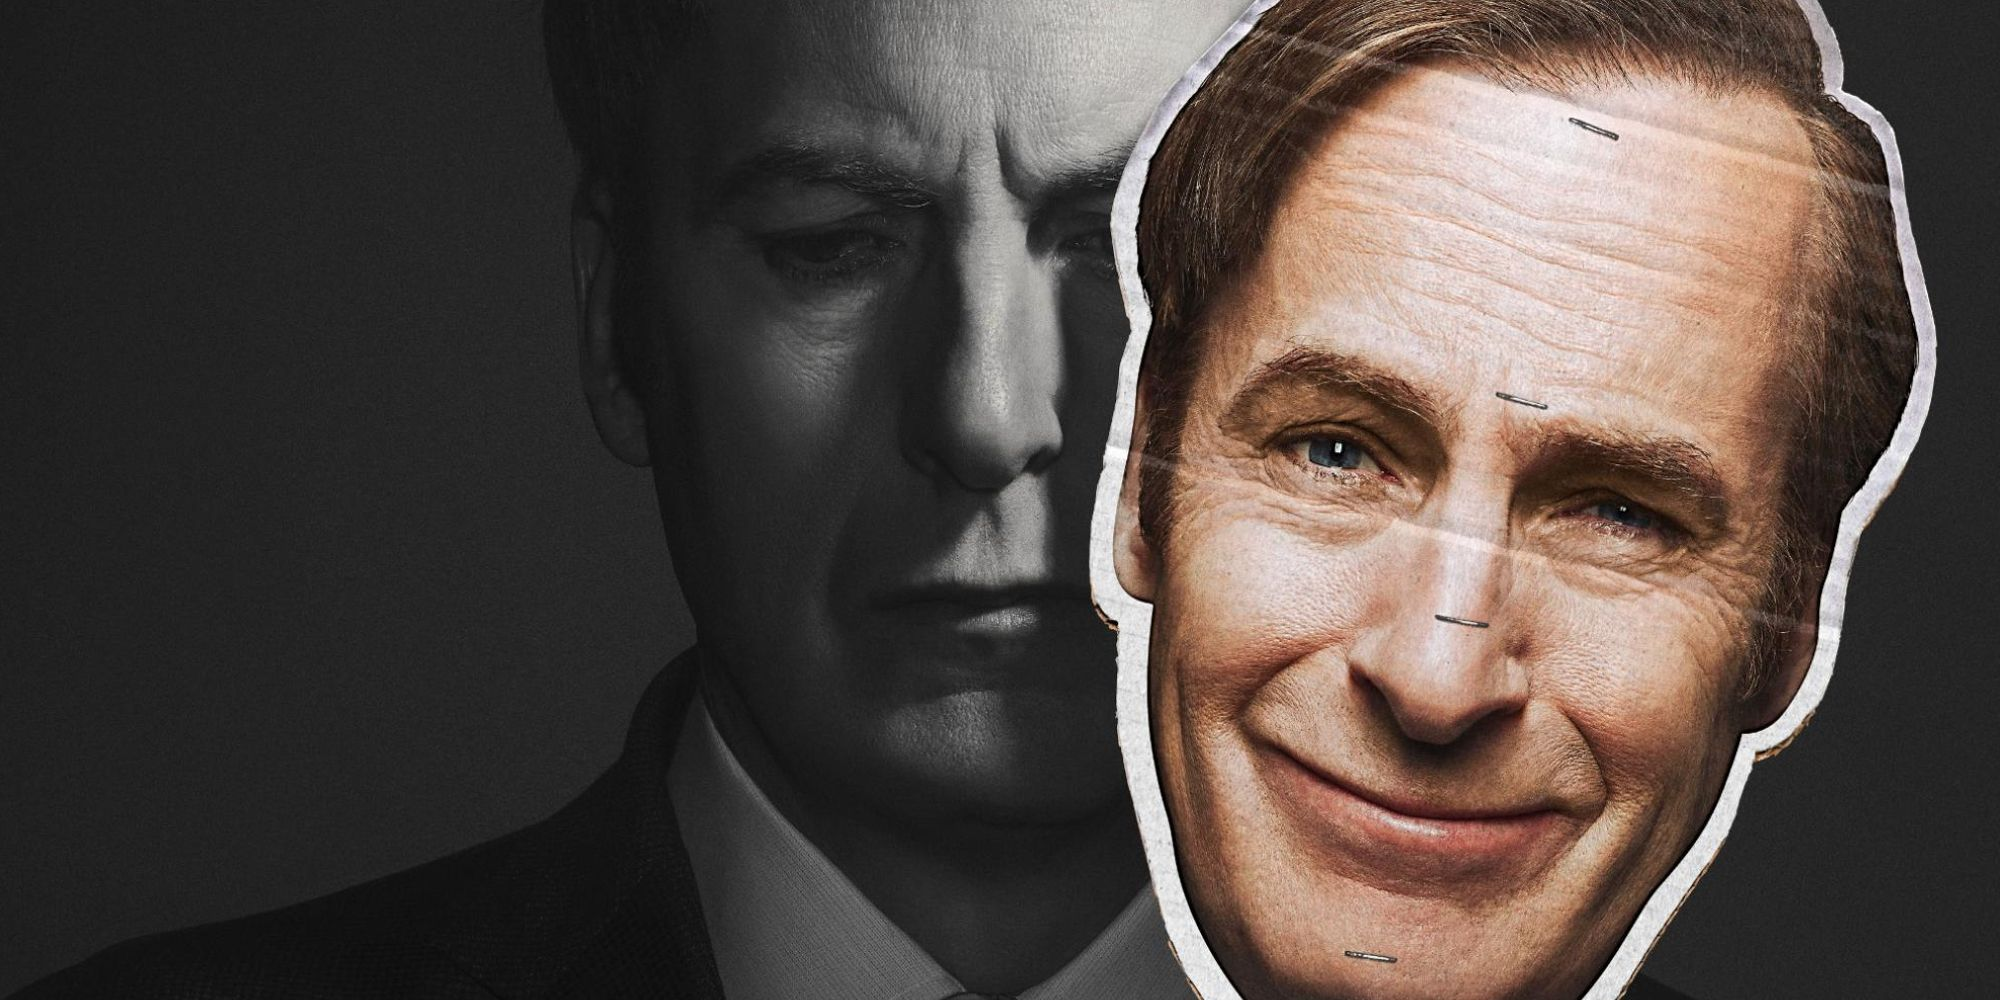 'Better Call Saul' gets renewed for 6th and final season |Better Call Saul Characters